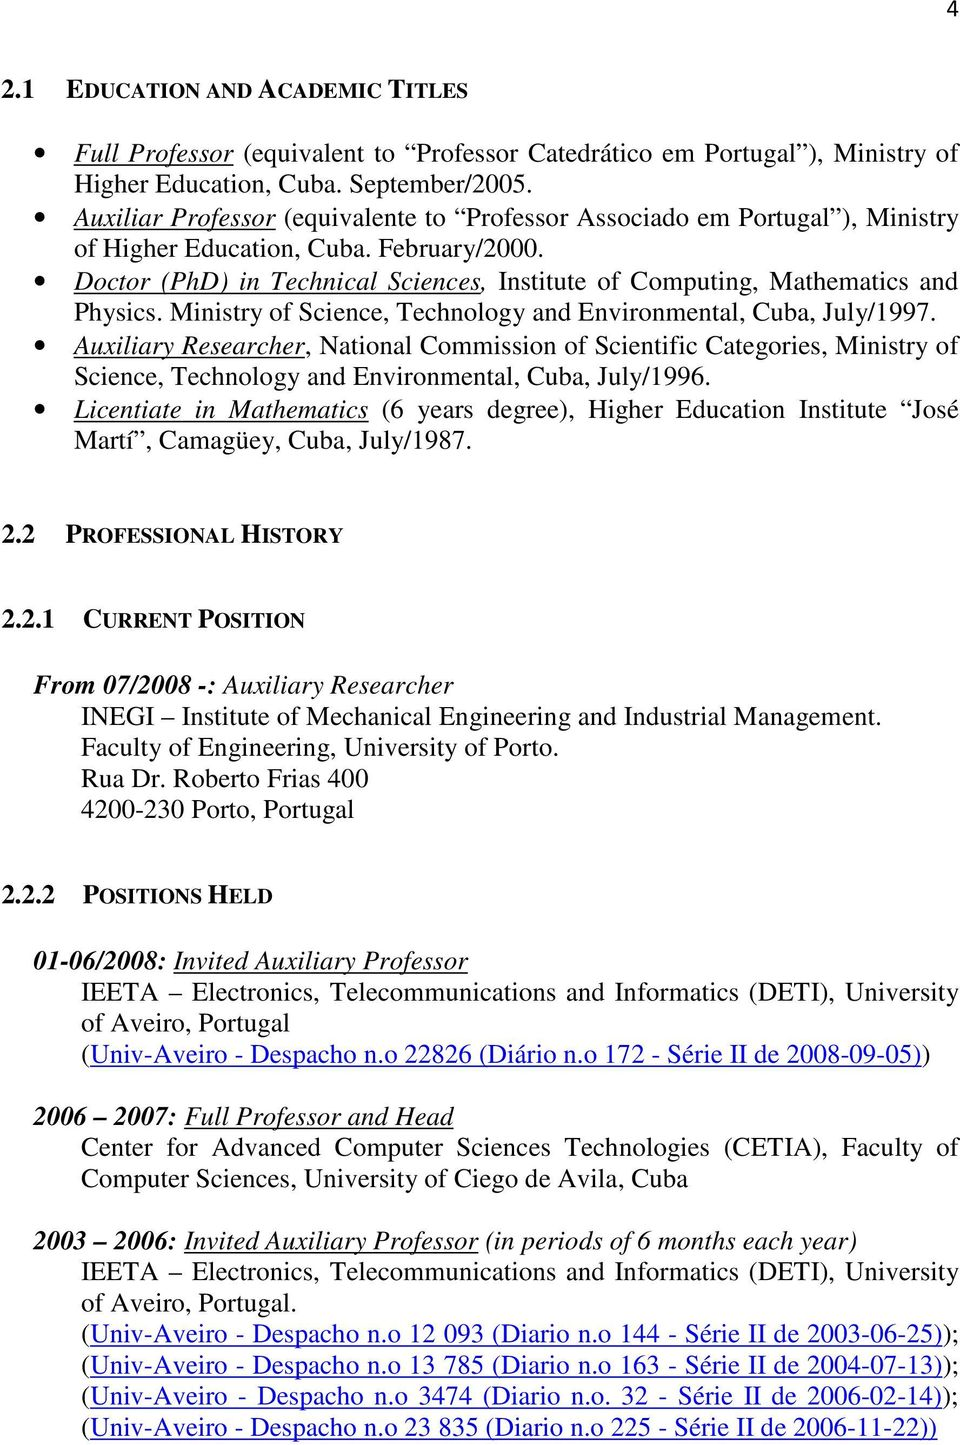 Doctor (PhD) in Technical Sciences, Institute of Computing, Mathematics and Physics. Ministry of Science, Technology and Environmental, Cuba, July/1997.